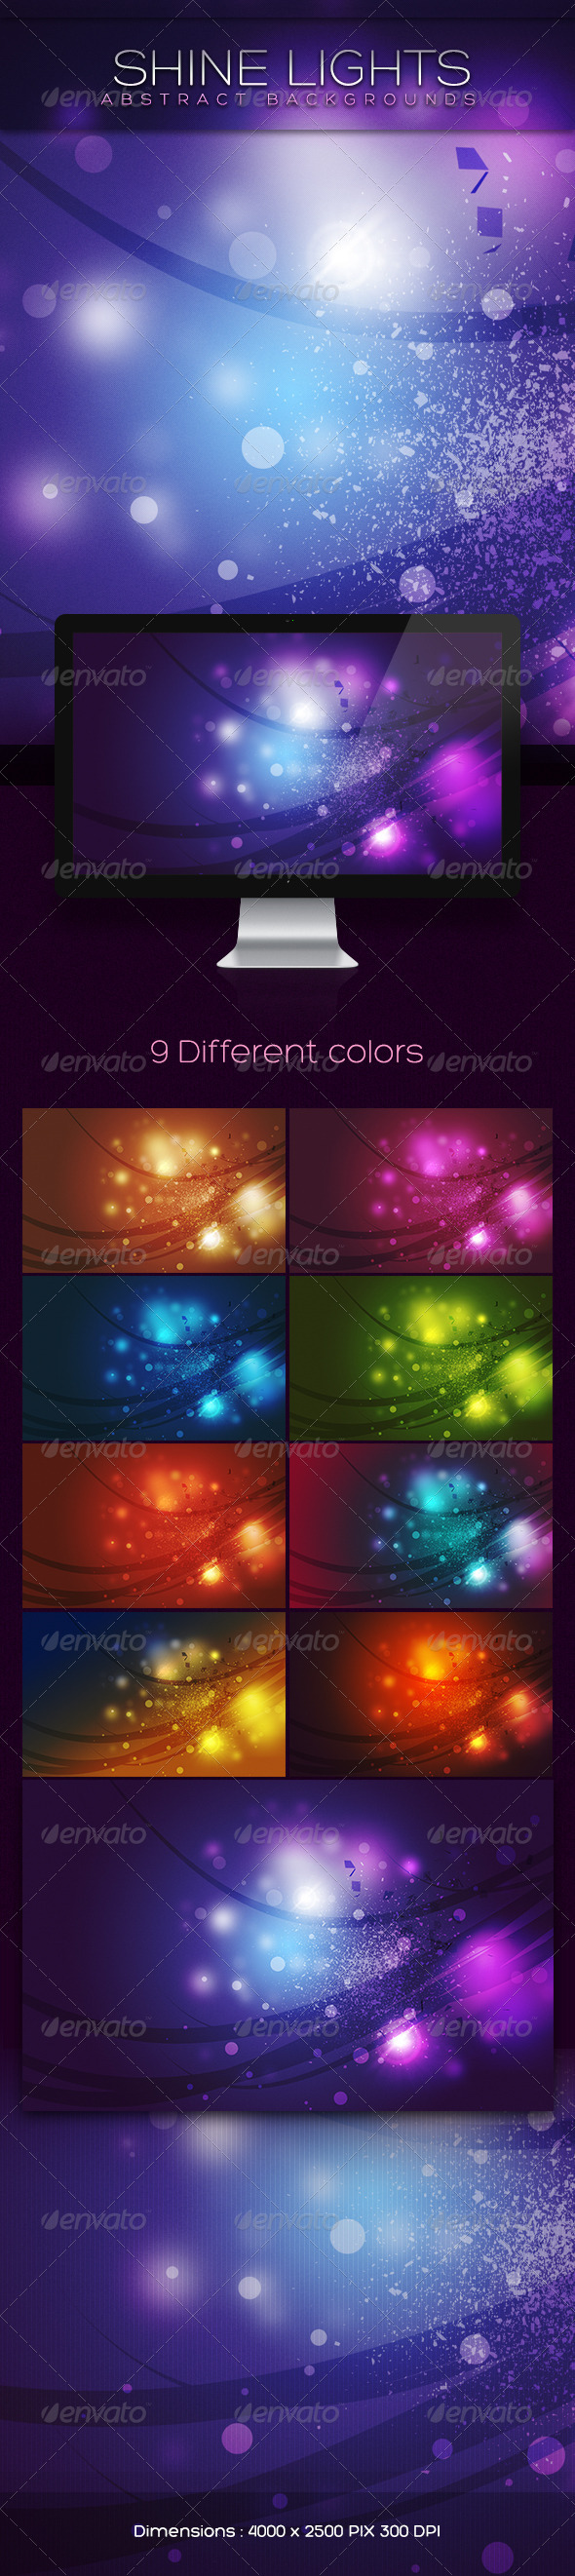 GraphicRiver Shine Lights Abstract Backgrounds 2819401